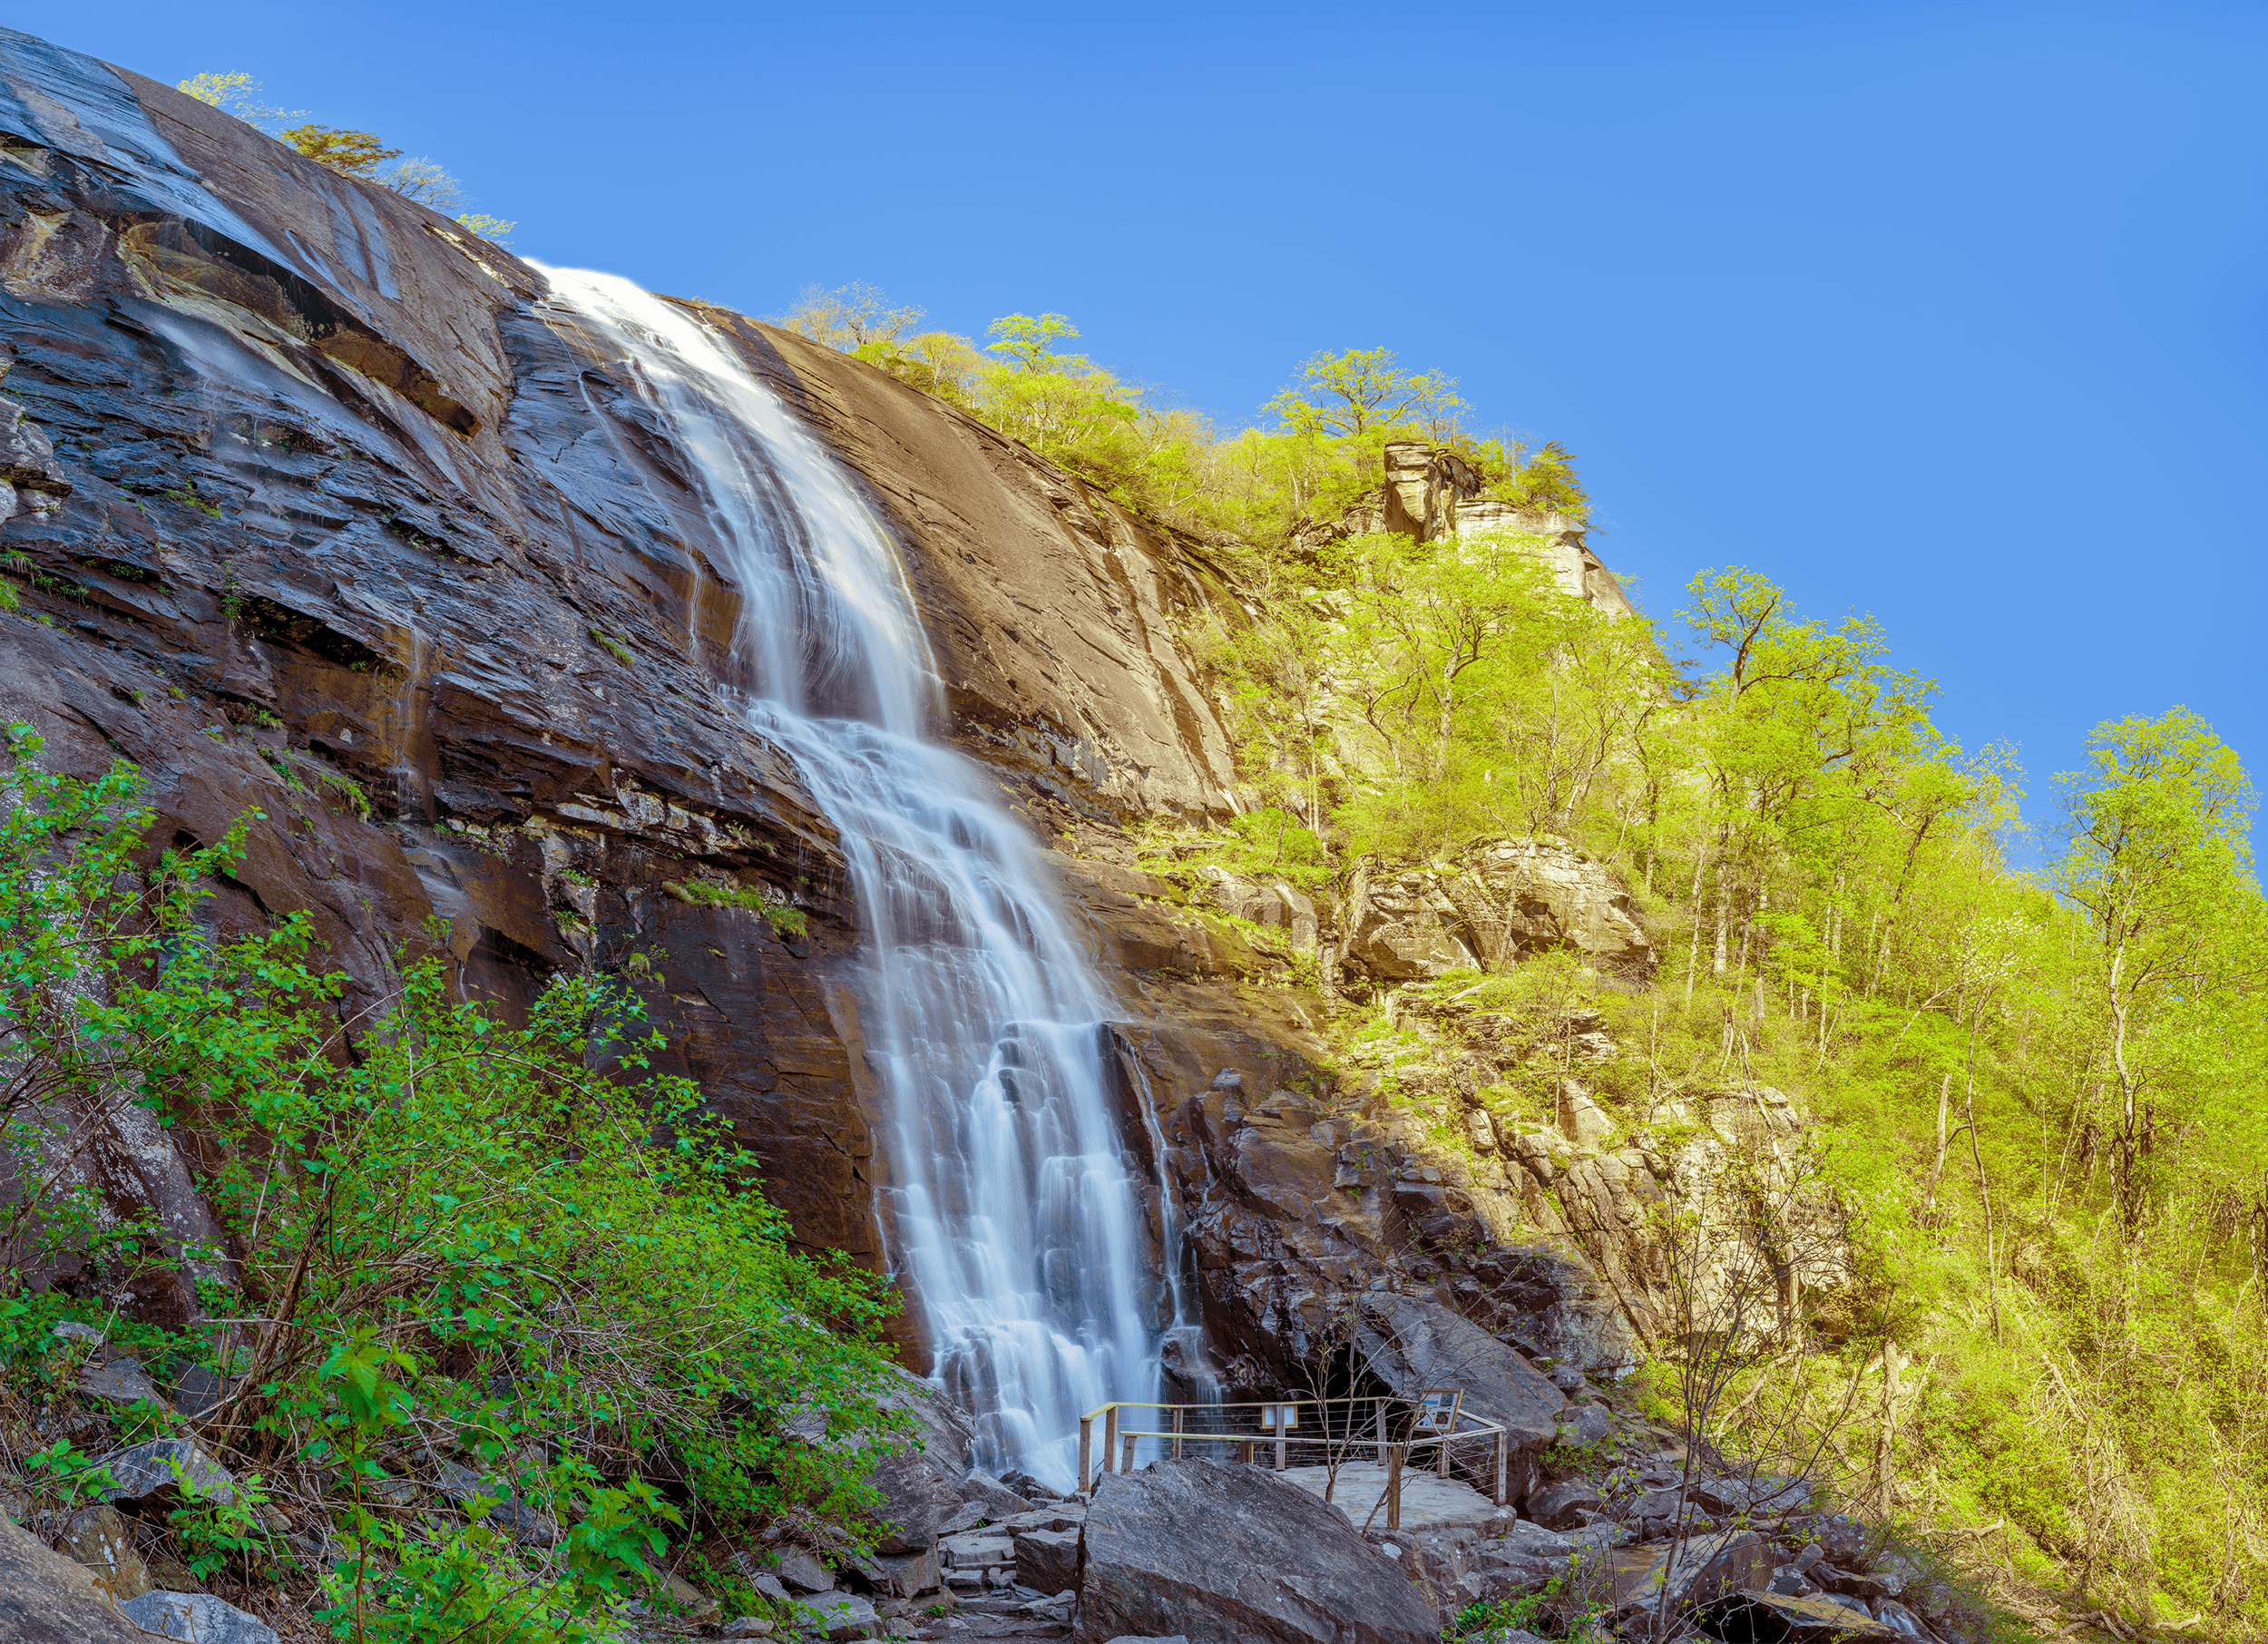 Flanked by towering cliffs to the left, the trail opens up a bit giving view to  Hickory Nut Falls .